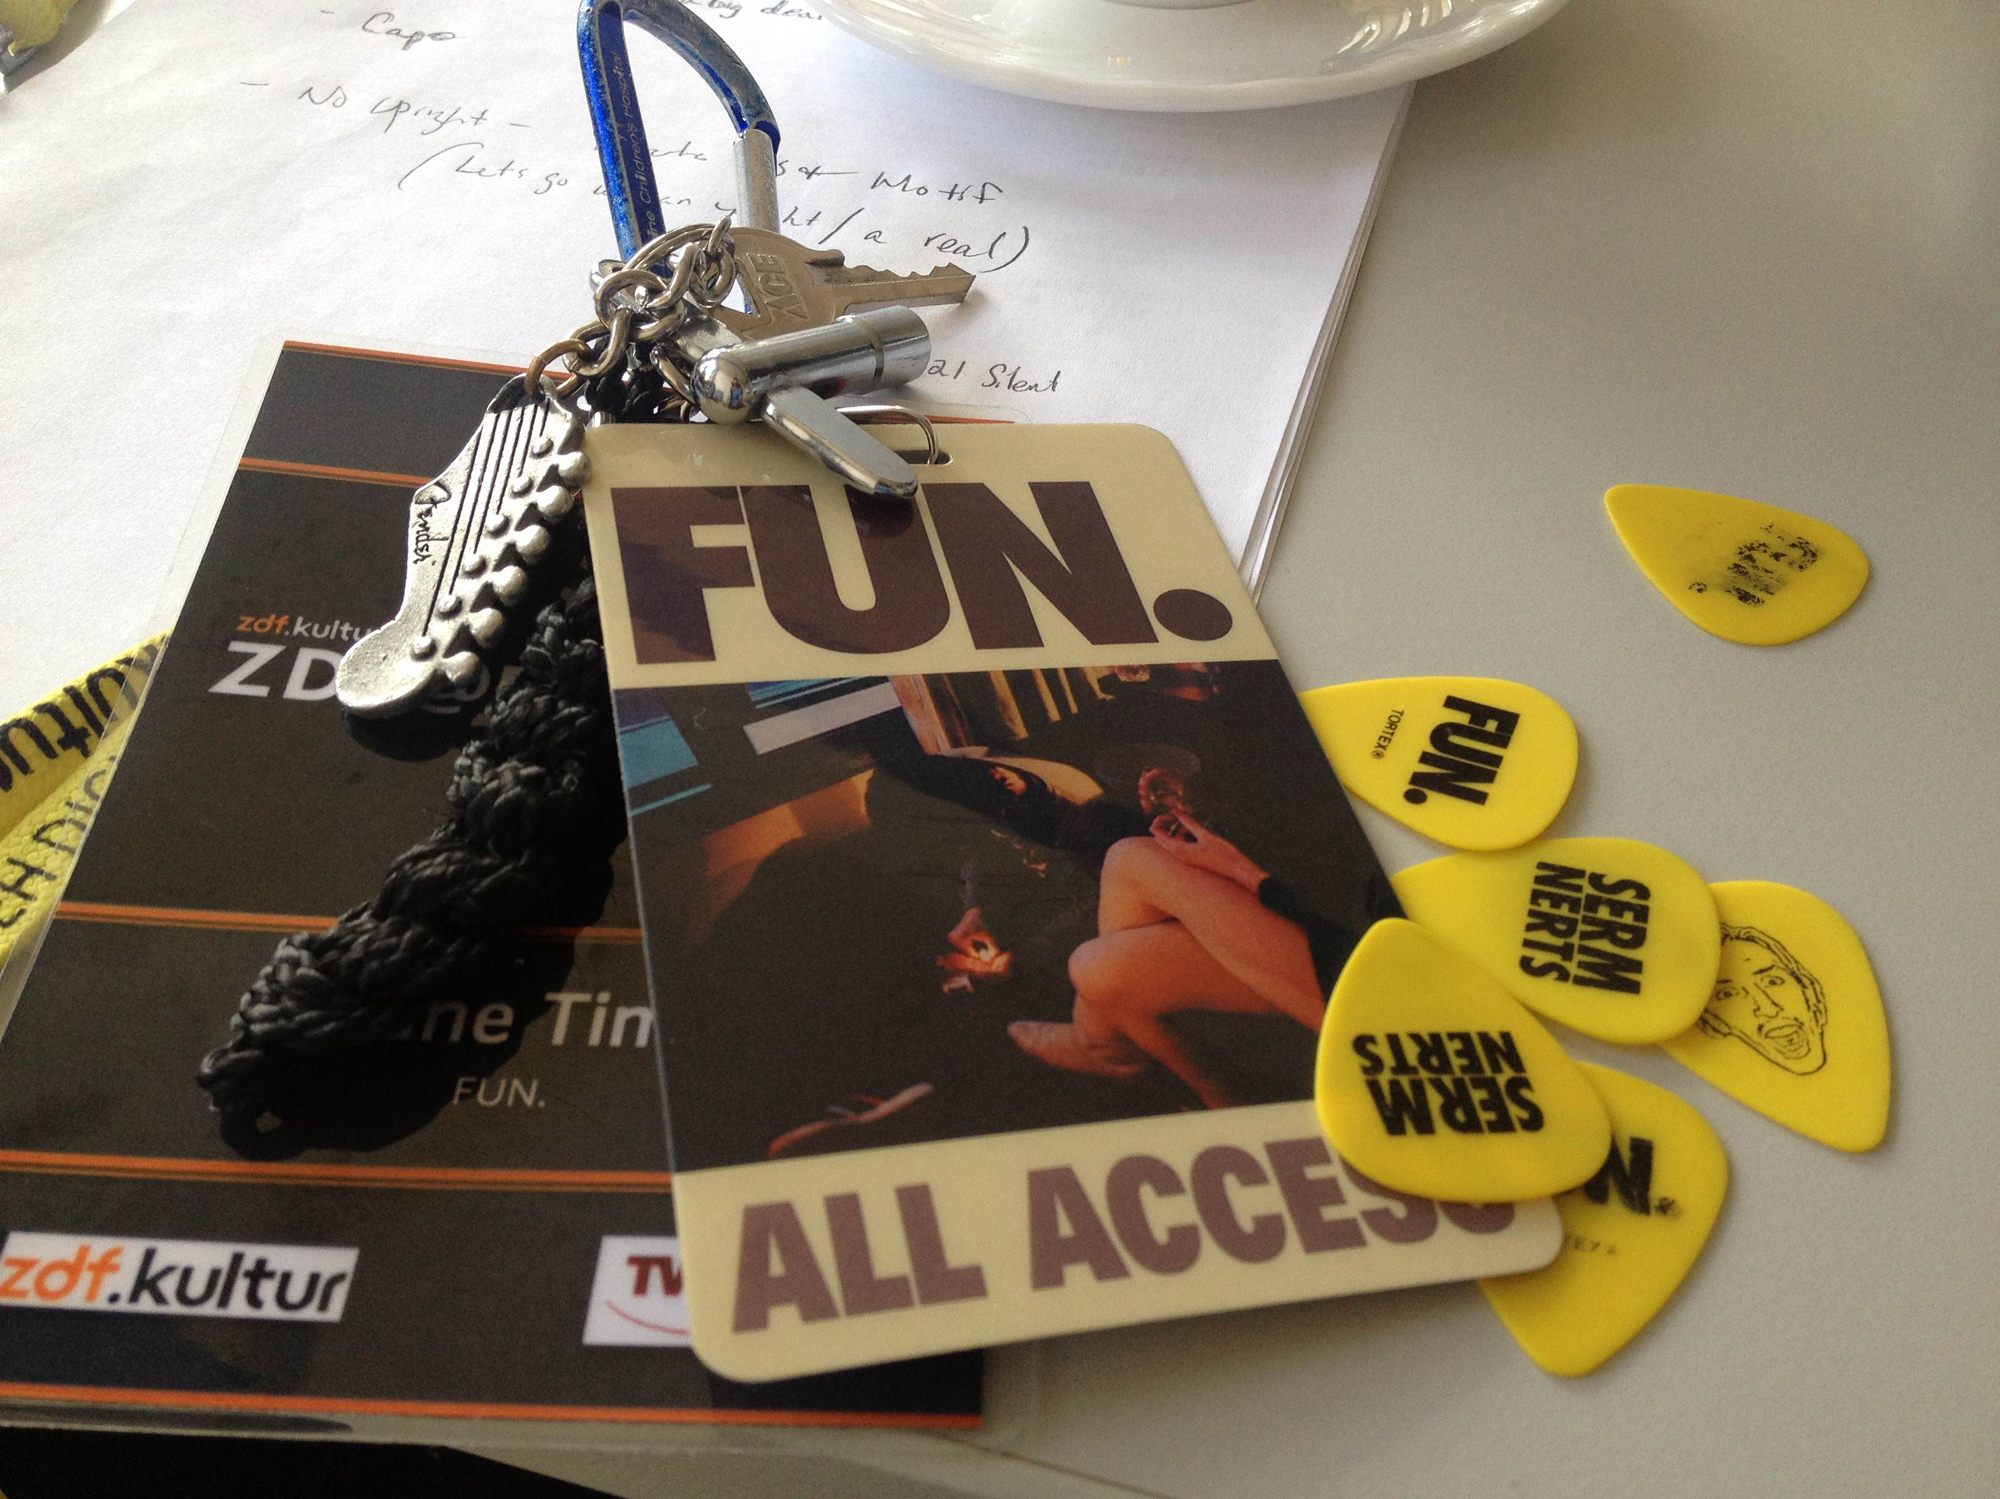 All Access: fun. guitar picks alongside tech Shane Timm's keys and back stage pass for the band's European tour.